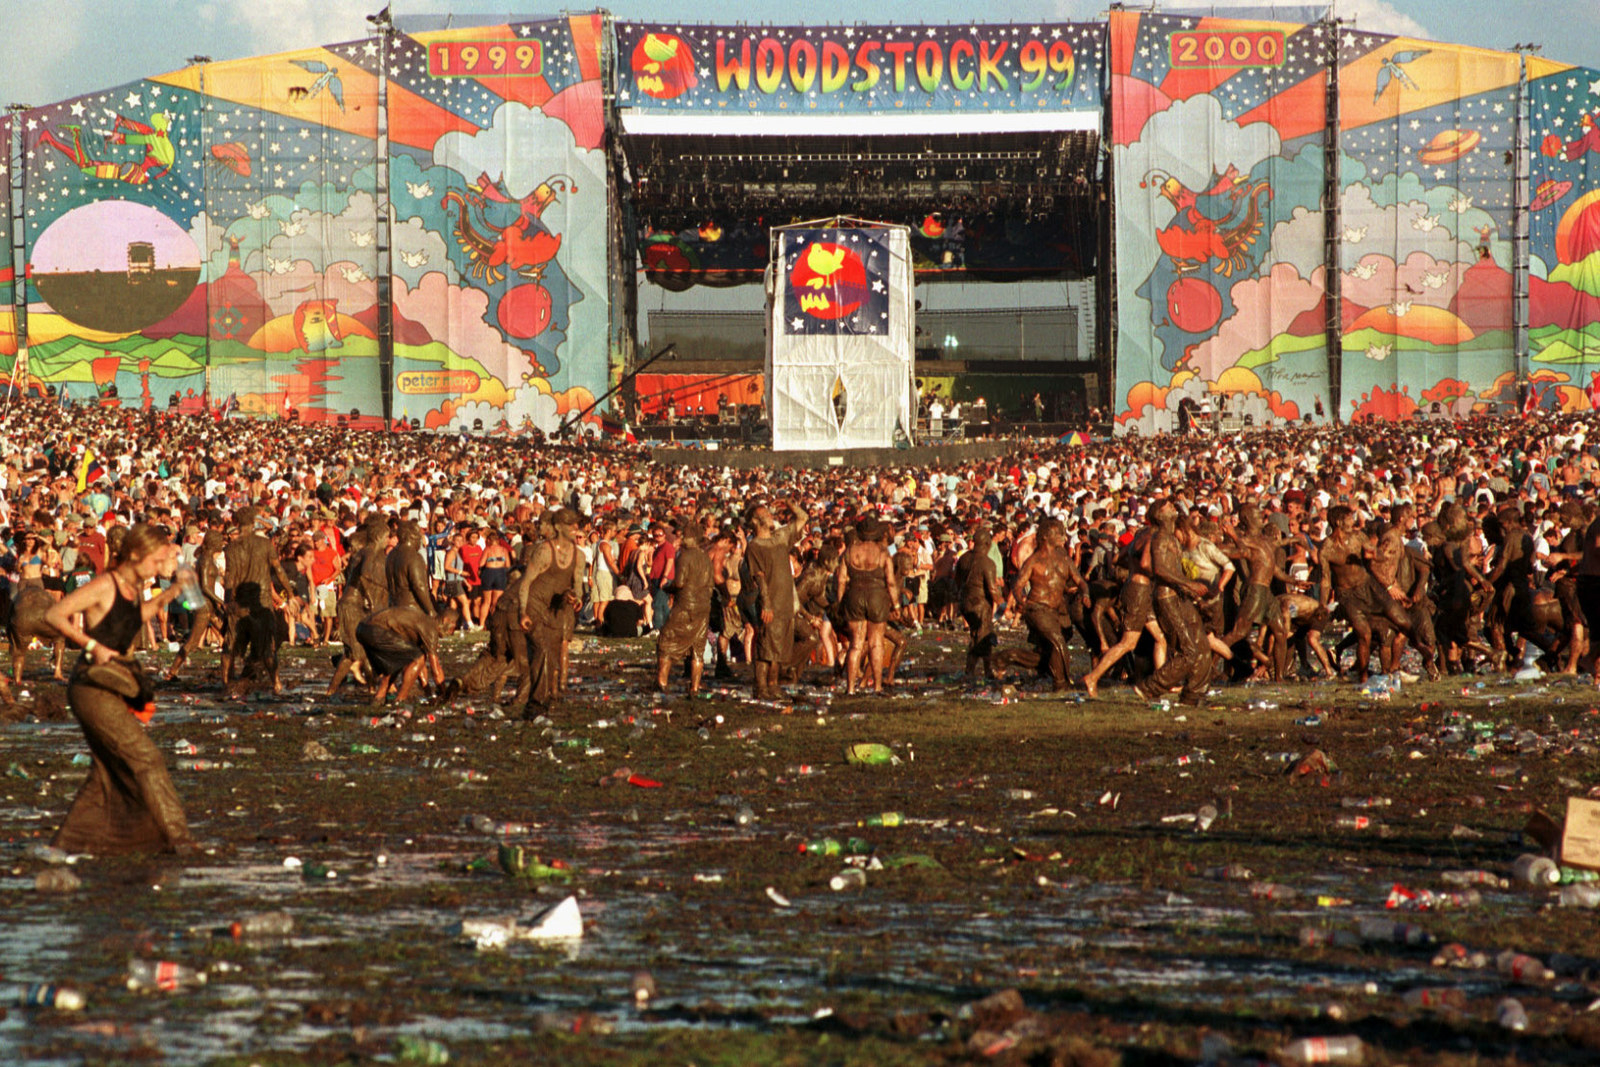 25 Pictures From The Shit Show That Was Woodstock '99